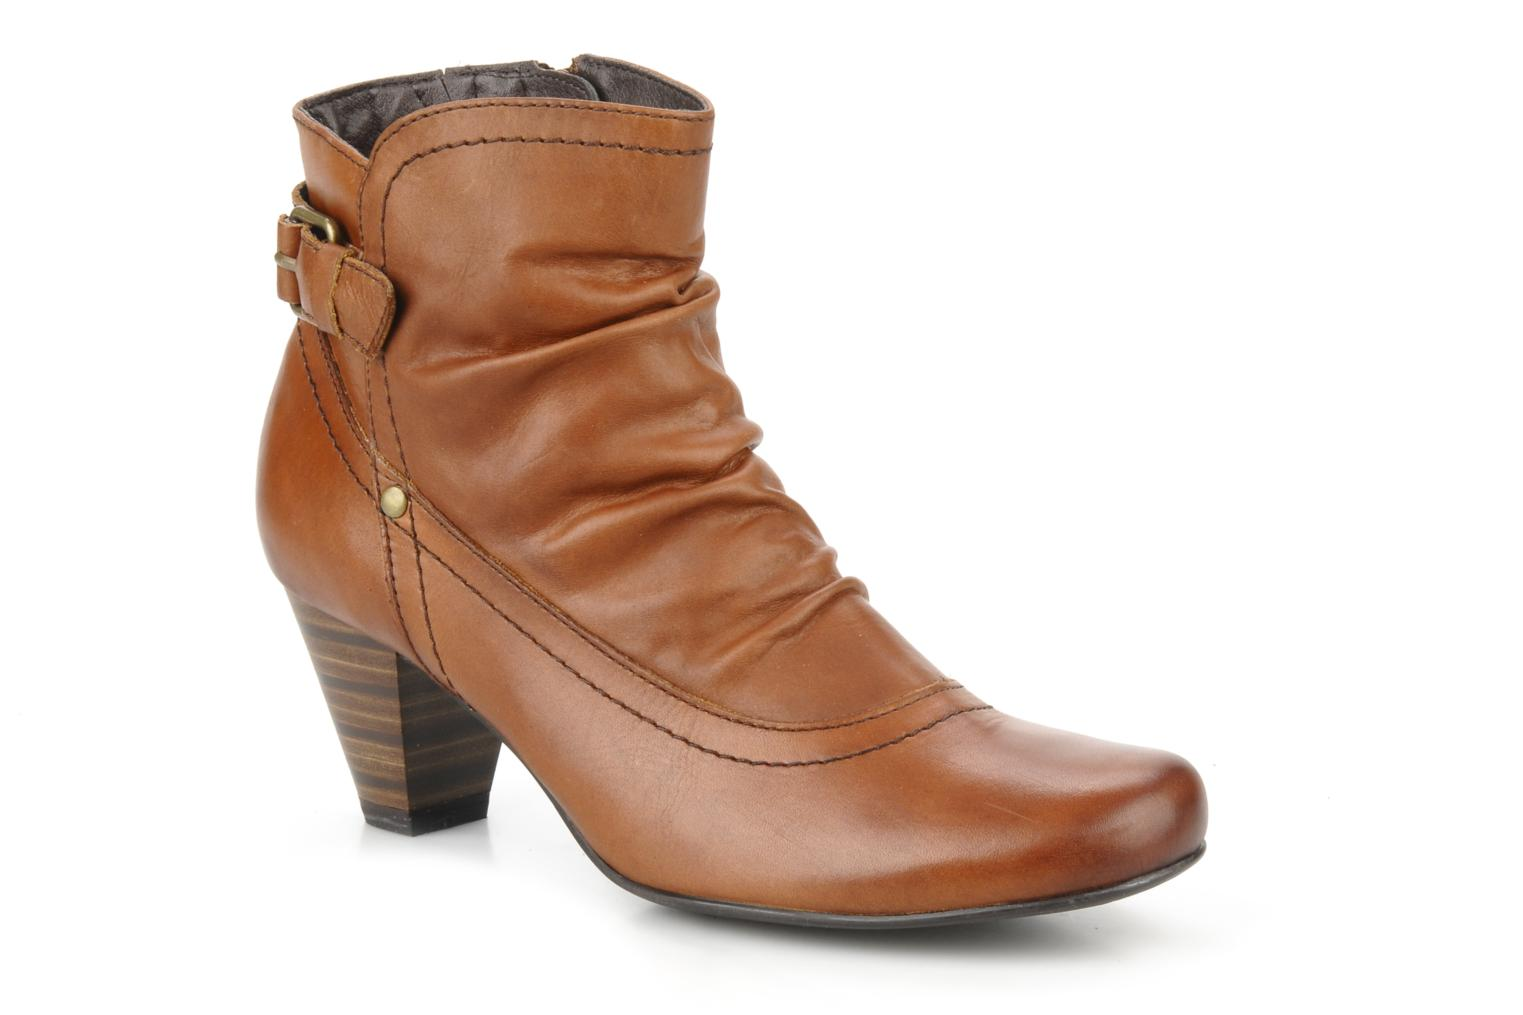 Lizy Muscat antic leather